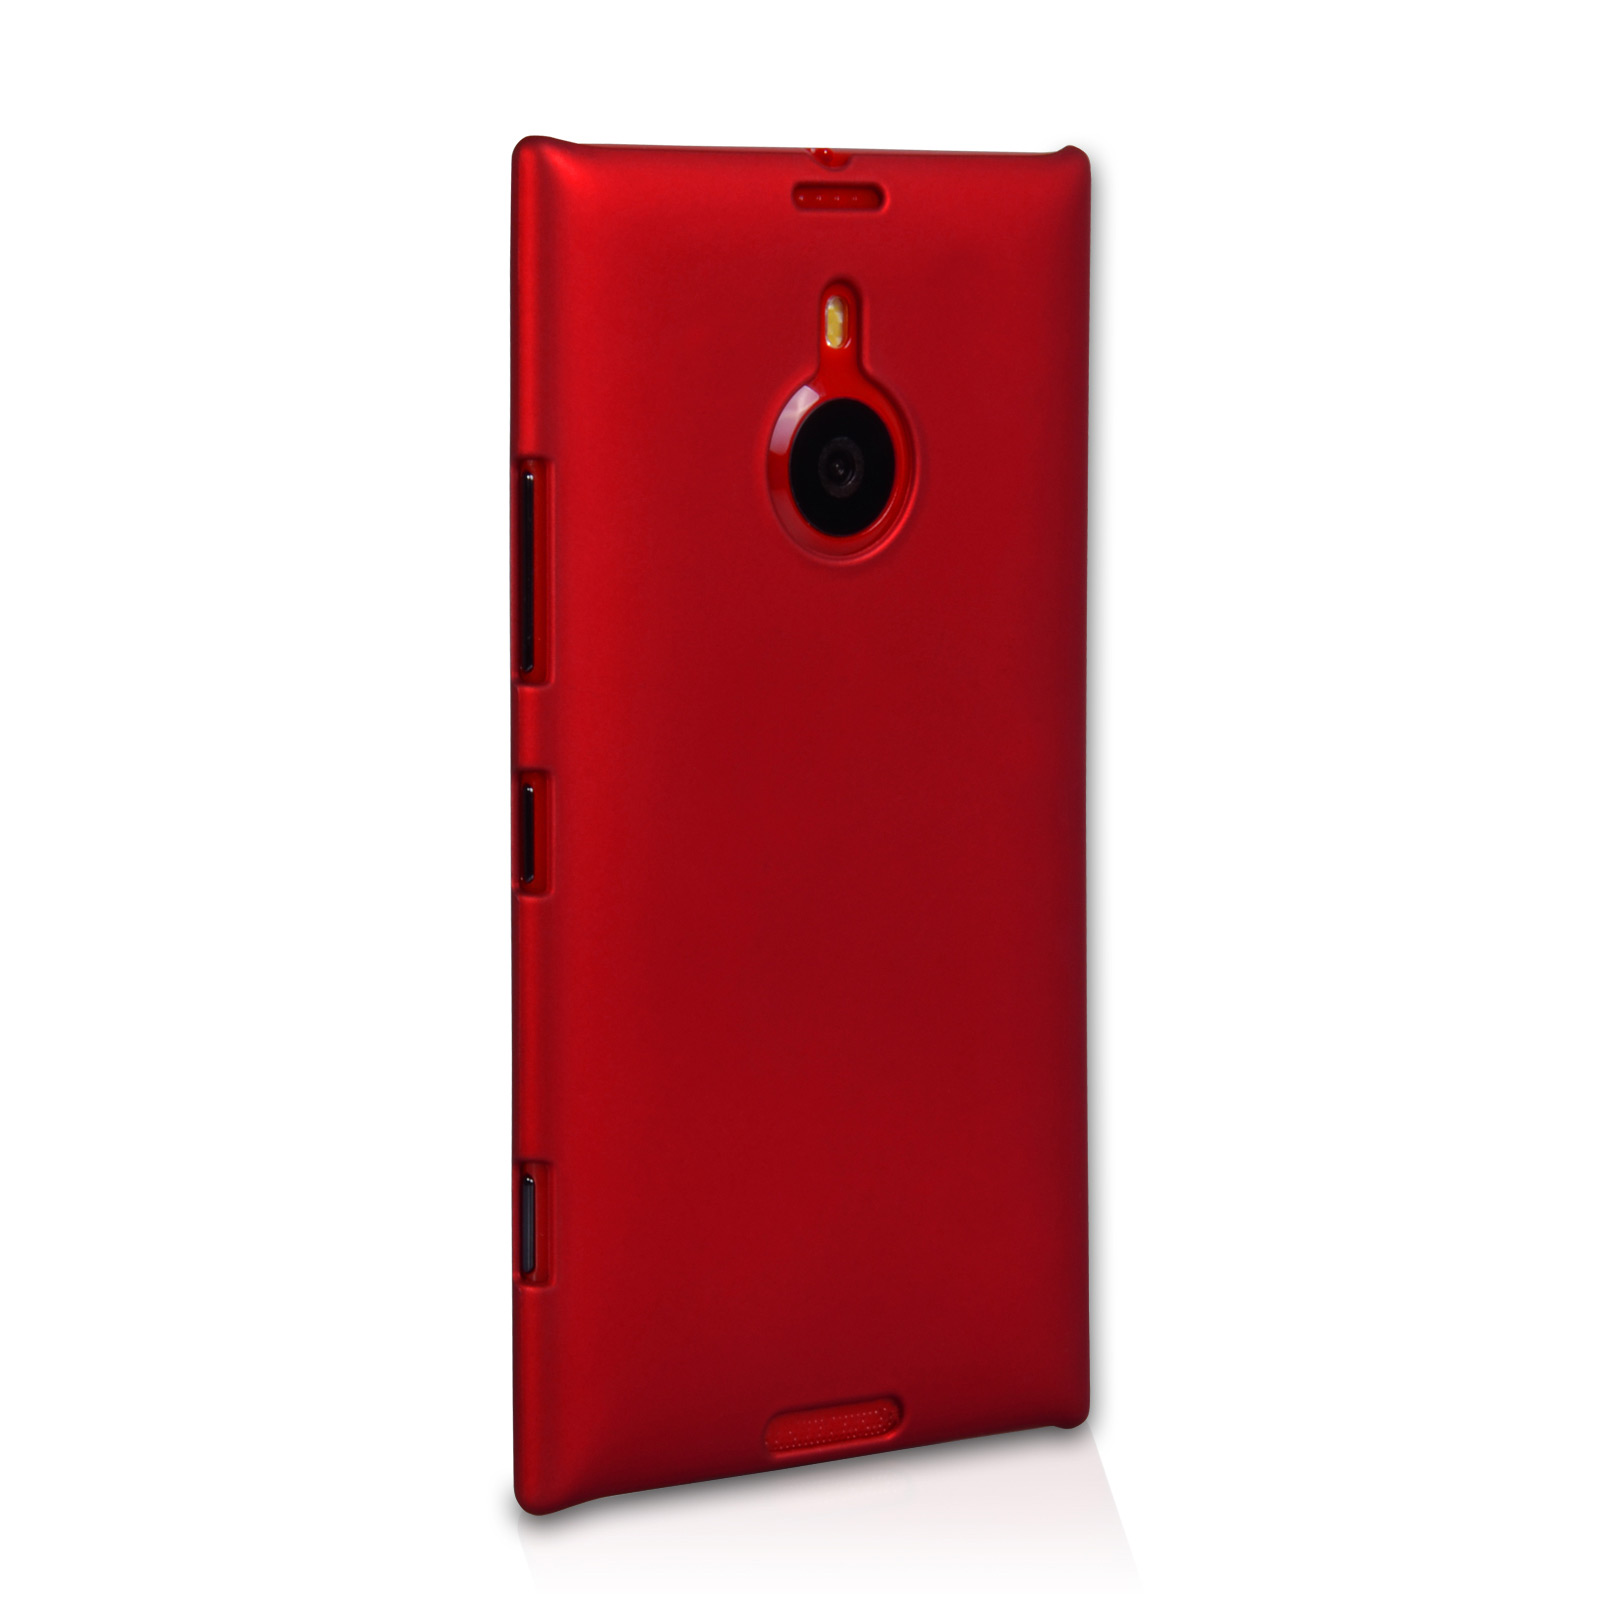 YouSave Accessories Nokia Lumia 1520 Hard Hybrid Case - Red